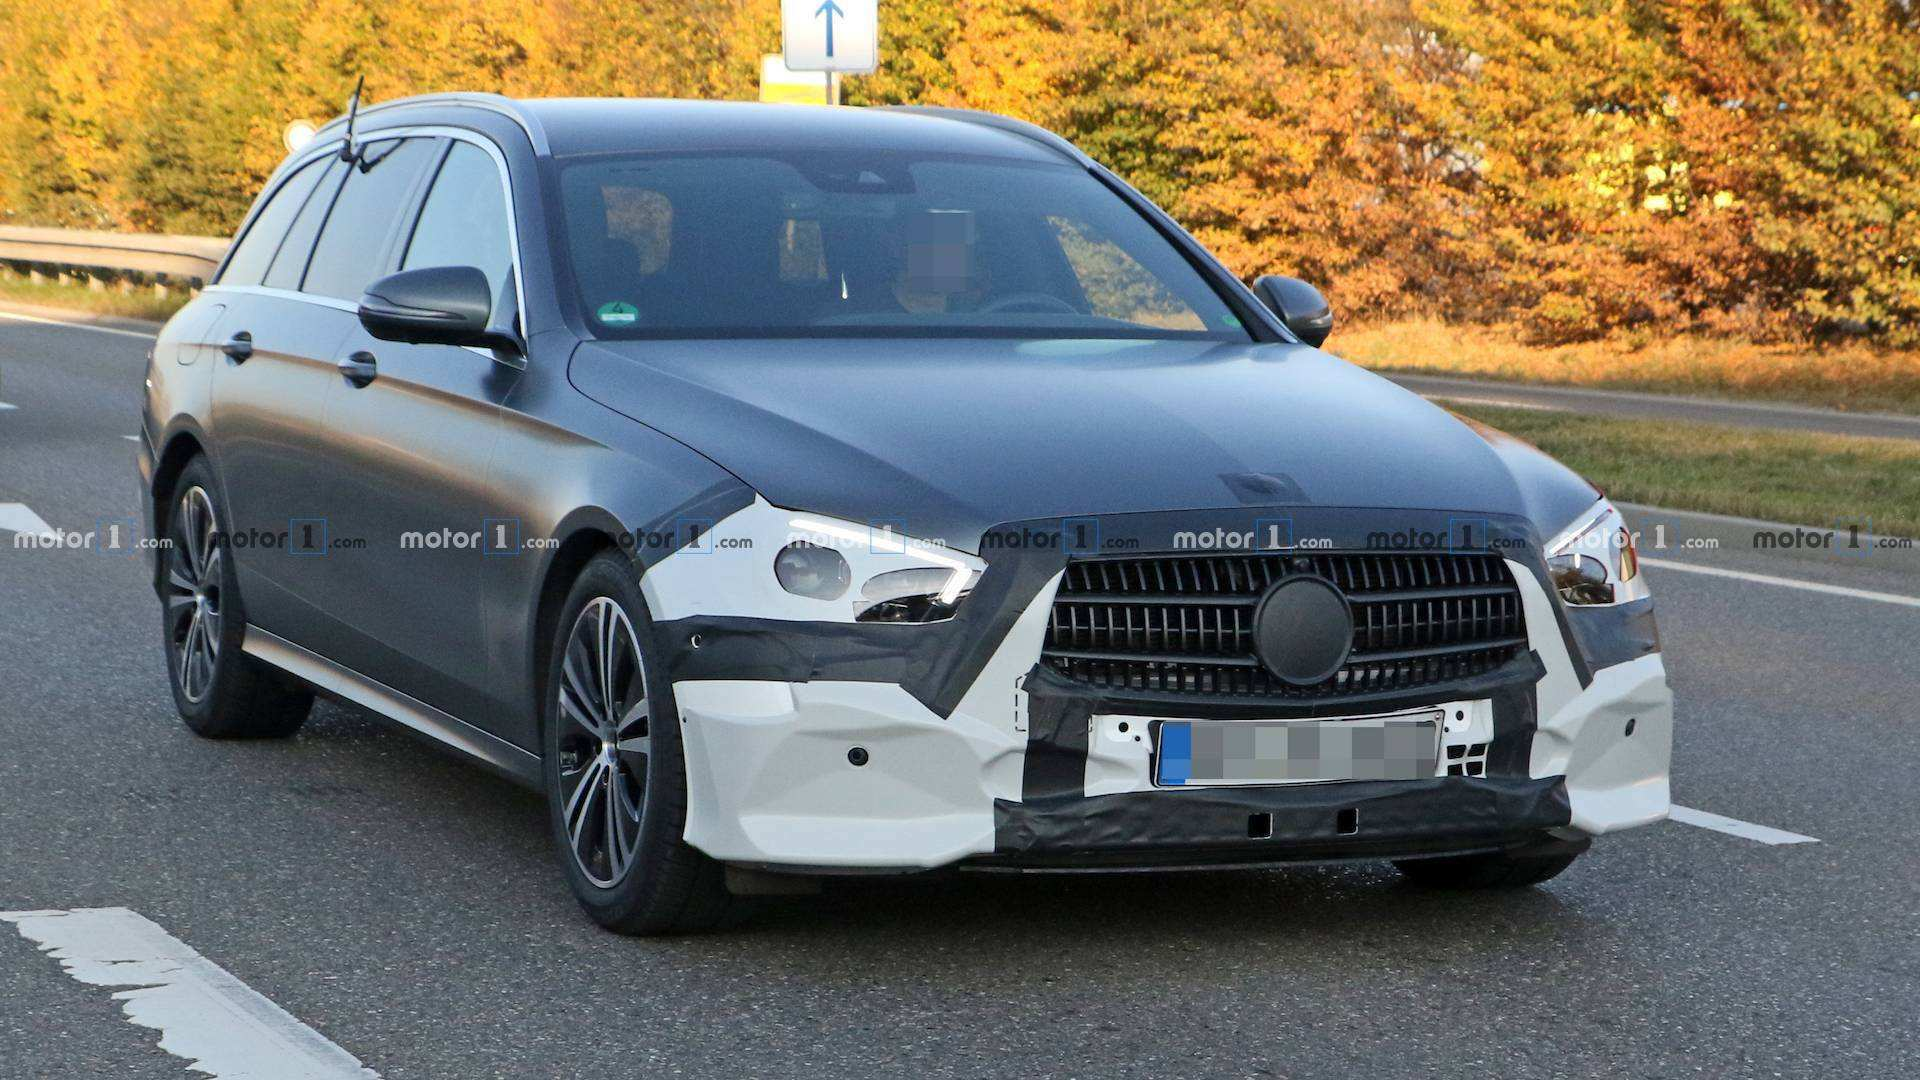 27 Concept of 2020 Mercedes Benz E Class Rumors by 2020 Mercedes Benz E Class